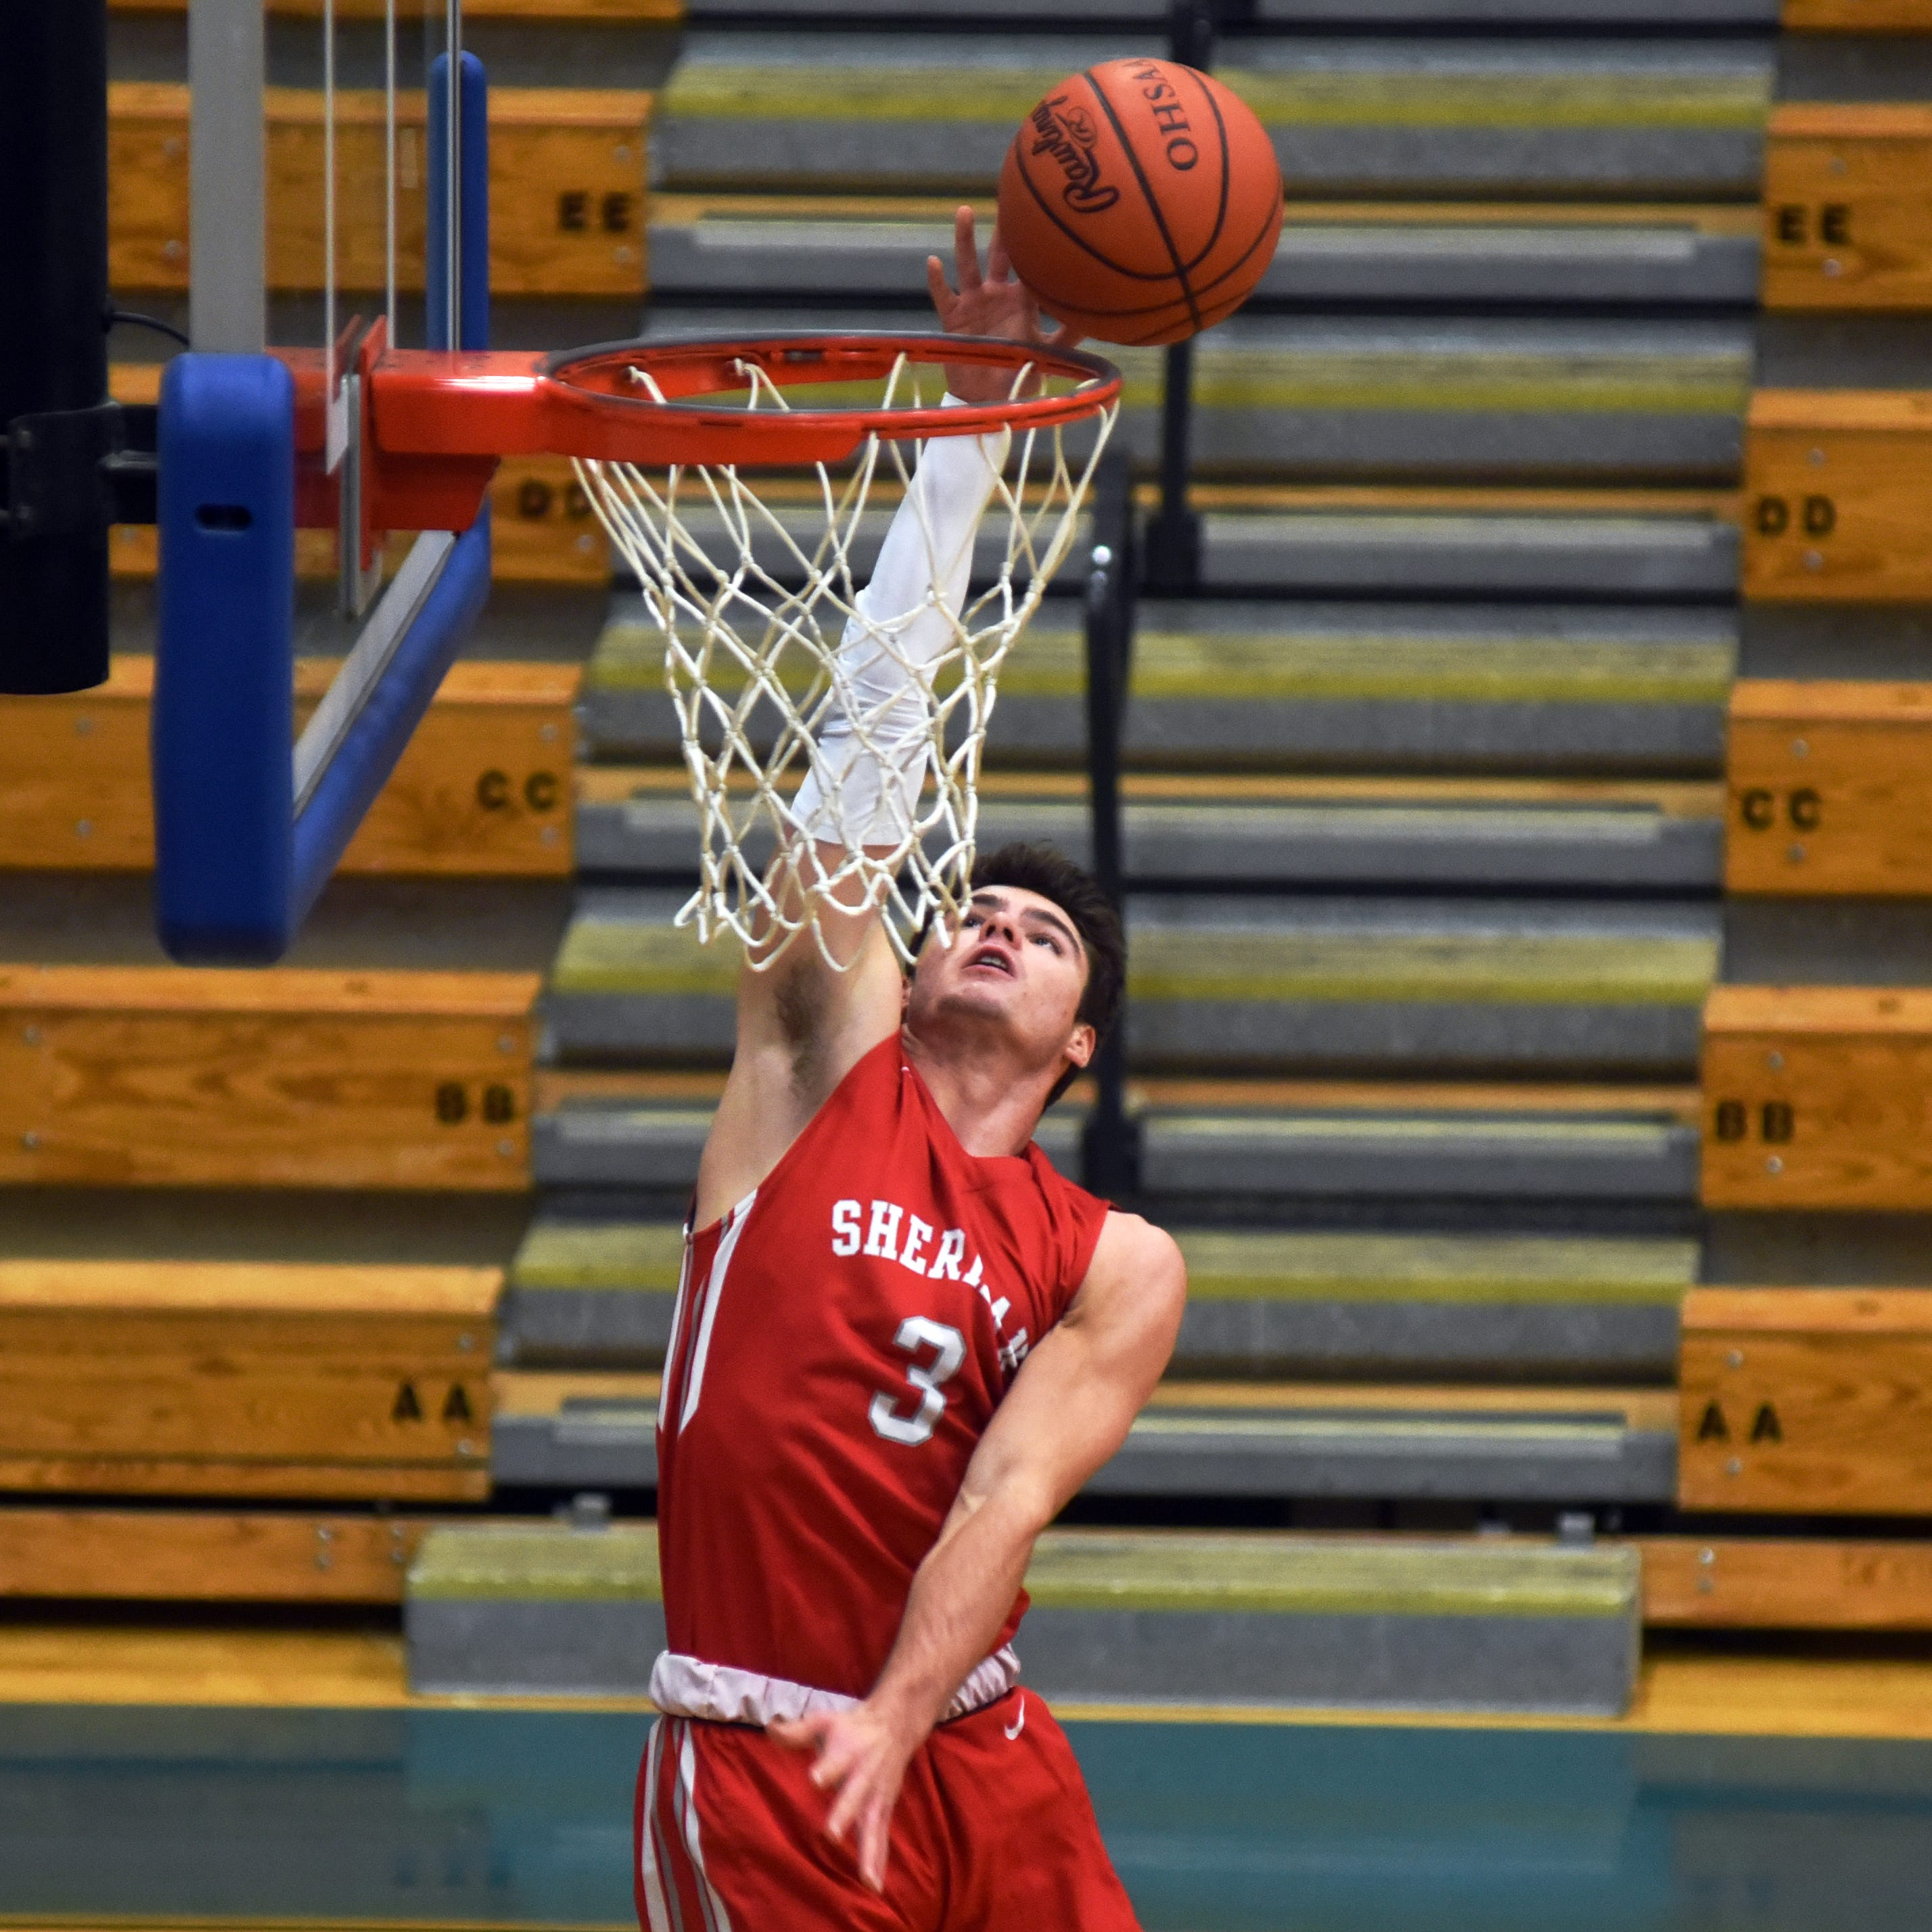 Sheridan's Heller a second-team All-Ohio pick